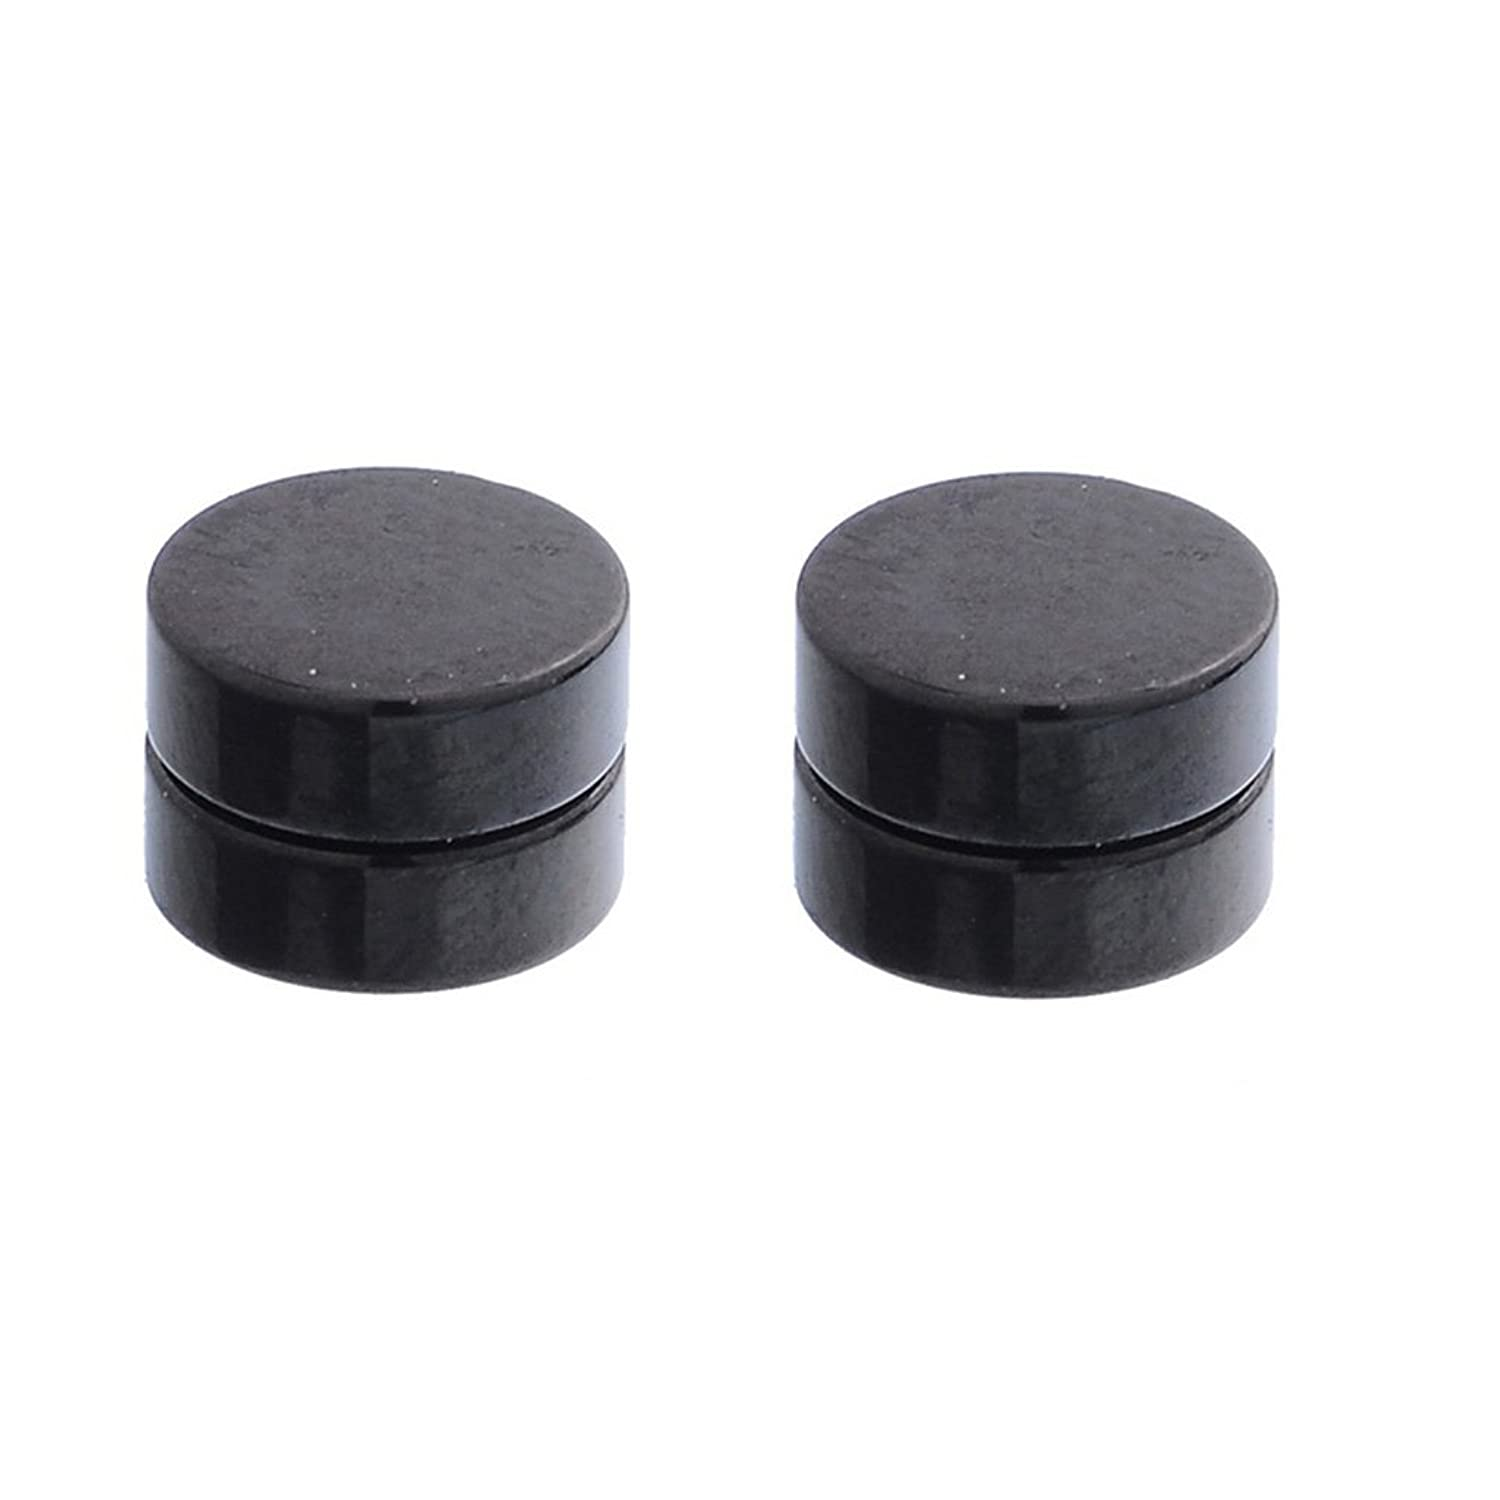 MJARTORIA Unisex Punk Style Black Acrylic Round Magnetic Fake Plugs No Piercing Clip On Stud Earrings